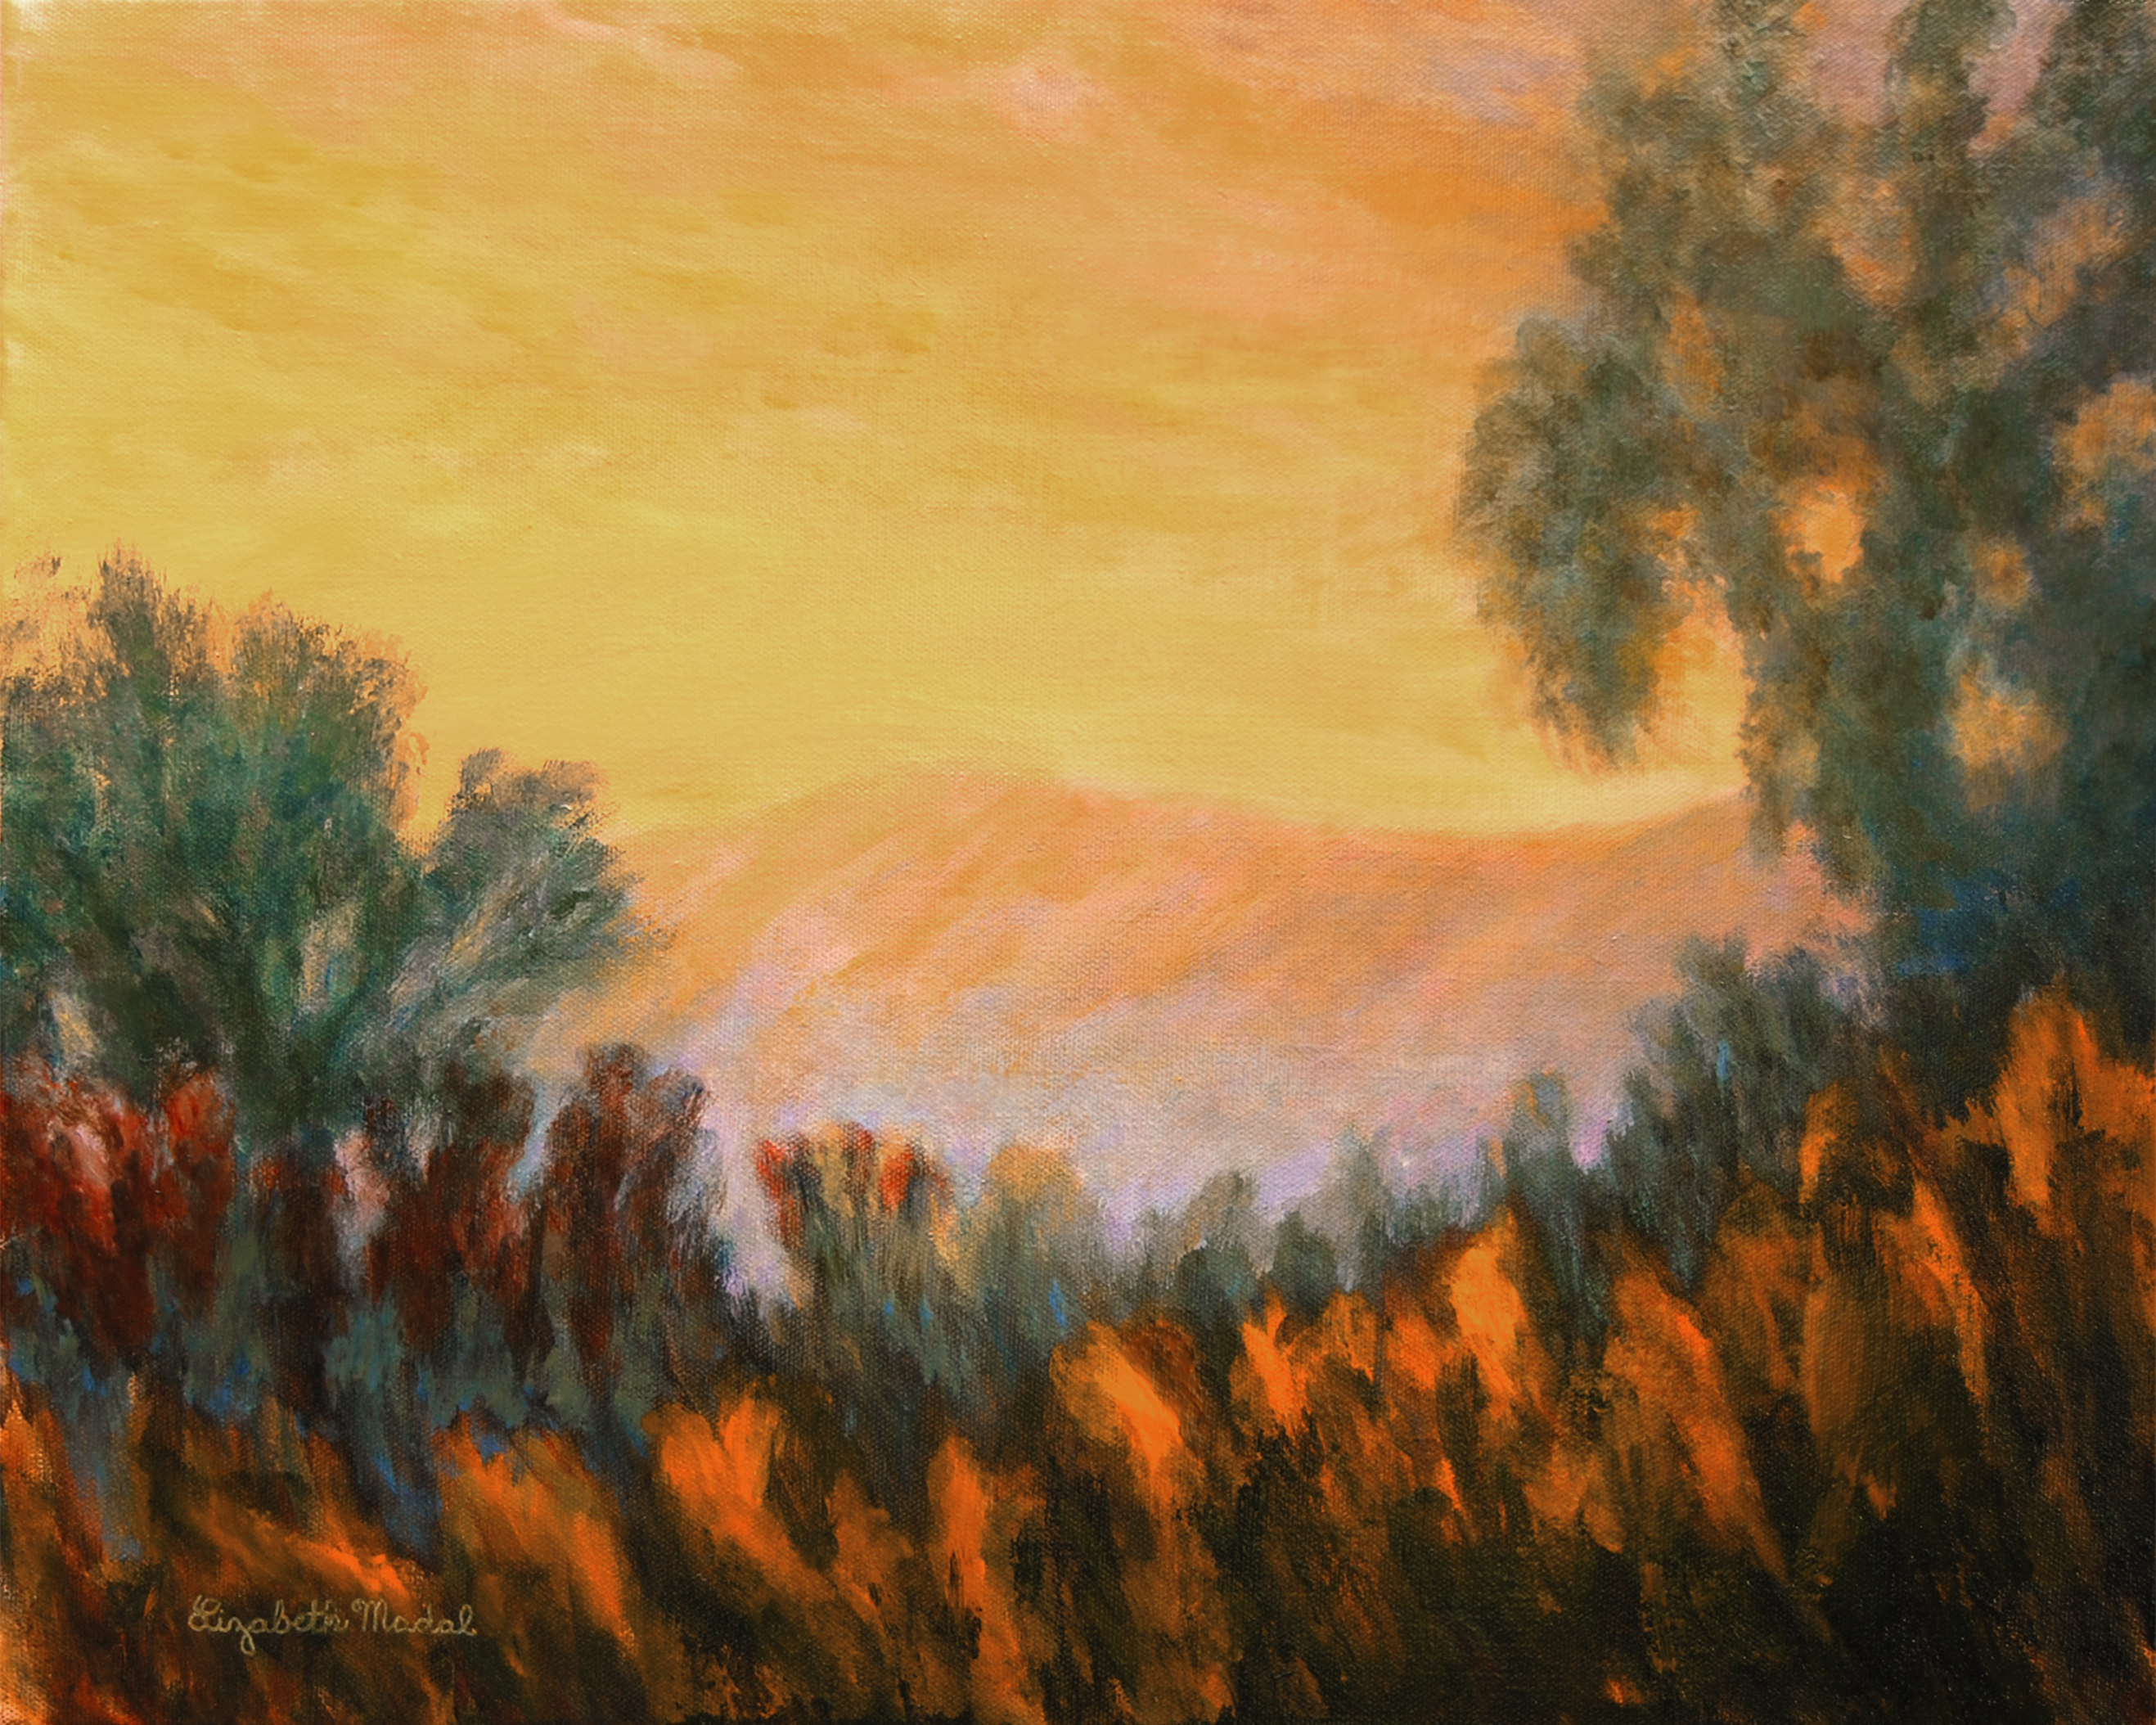 Painting: More Mesa at Dusk